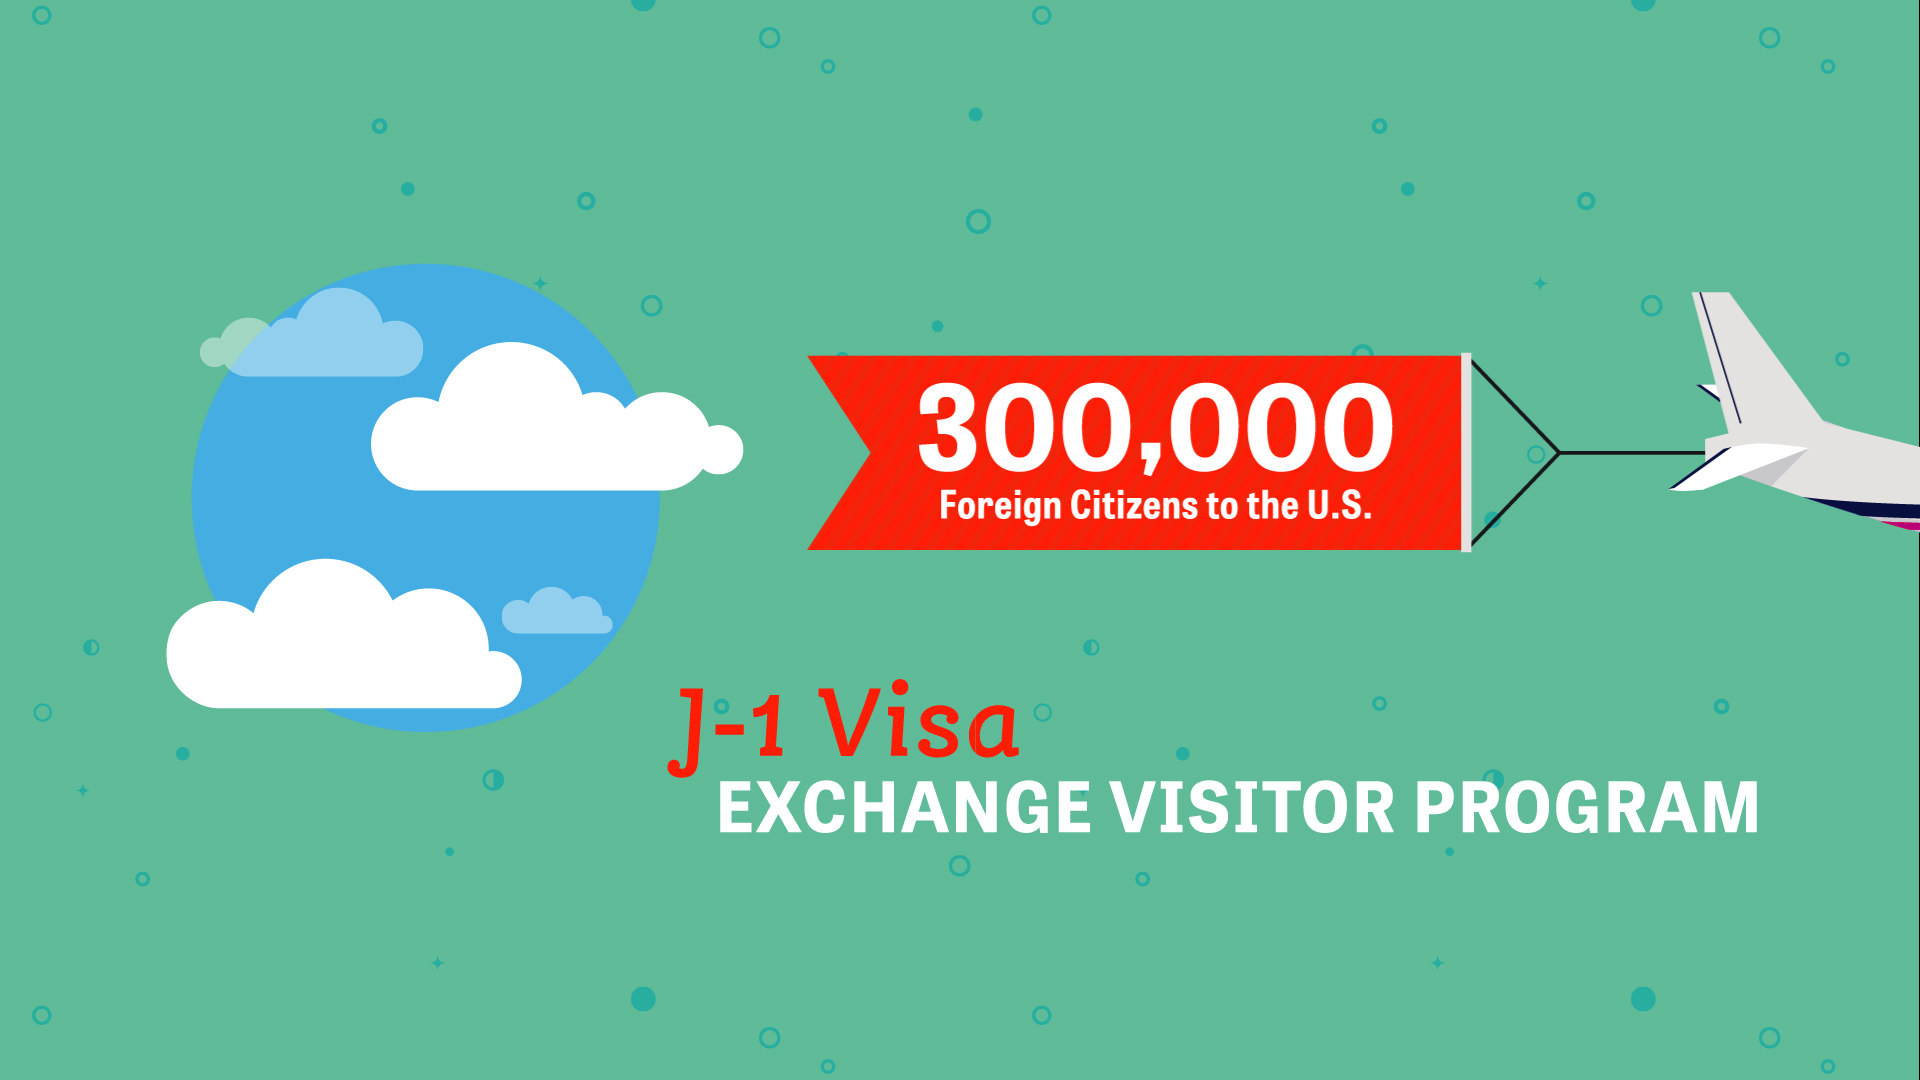 """Title Graphic reads """"J-1 Visa Exchange Visitor Program"""" below illustration of clouds and the tail end of a plane with a banner that reads: 300,000 Foreign Citizens to the U.S."""